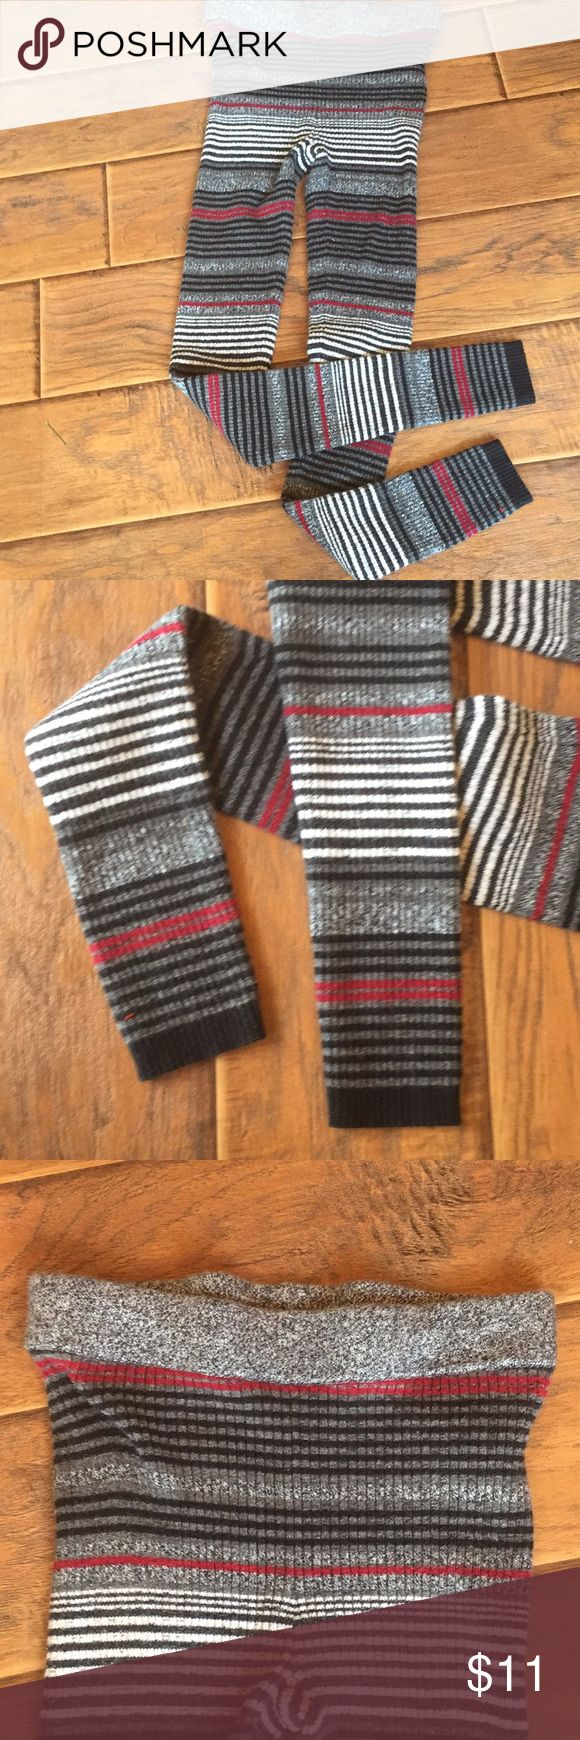 American Eagle Stripe Sweater Leggins/Pants - S/P Cute American Eagle sweater stripe Leggins/pants, dark gray, black, burgundy, white stripe.  Gently worn, great condition.  Goes good with gray sweater listed. American Eagle Pants Leggings